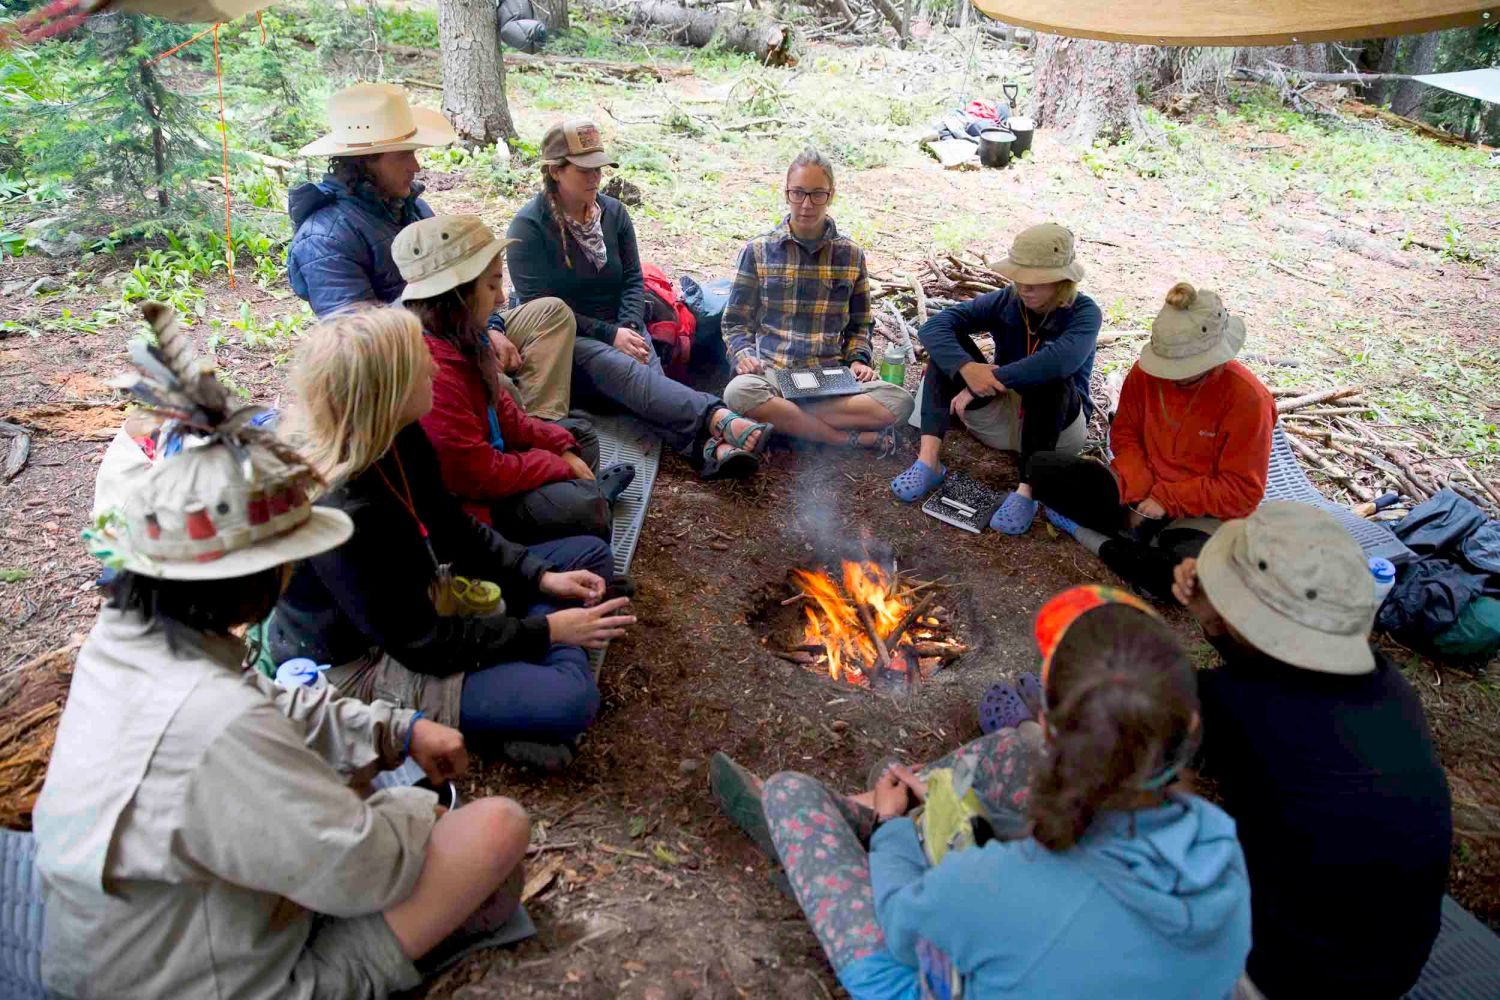 Therapist Sierra Williams and Adolescent Girls group therapy session at Open Sky Wilderness.